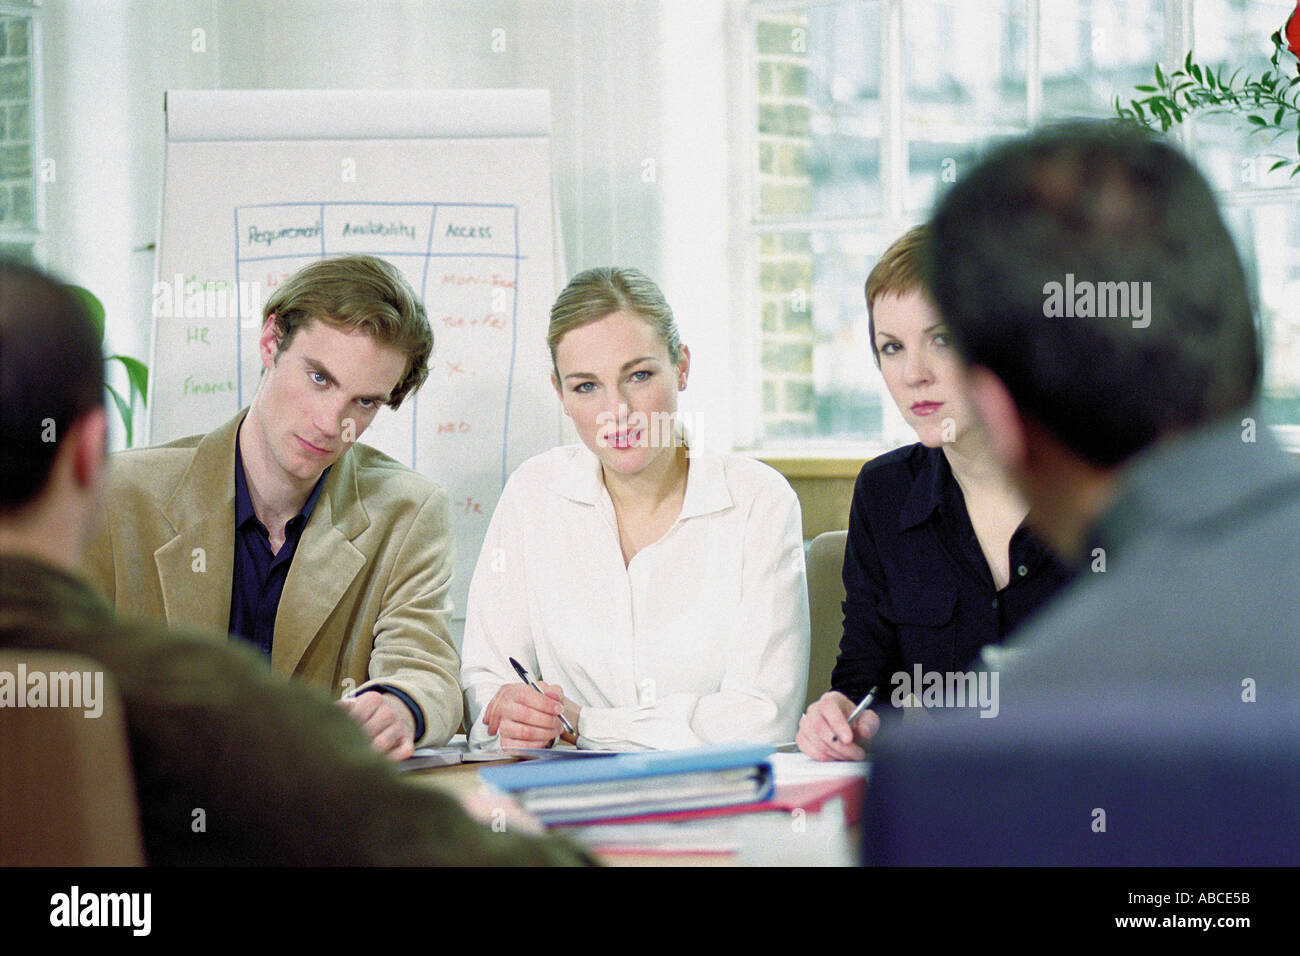 Businesspeople in office - Stock Image